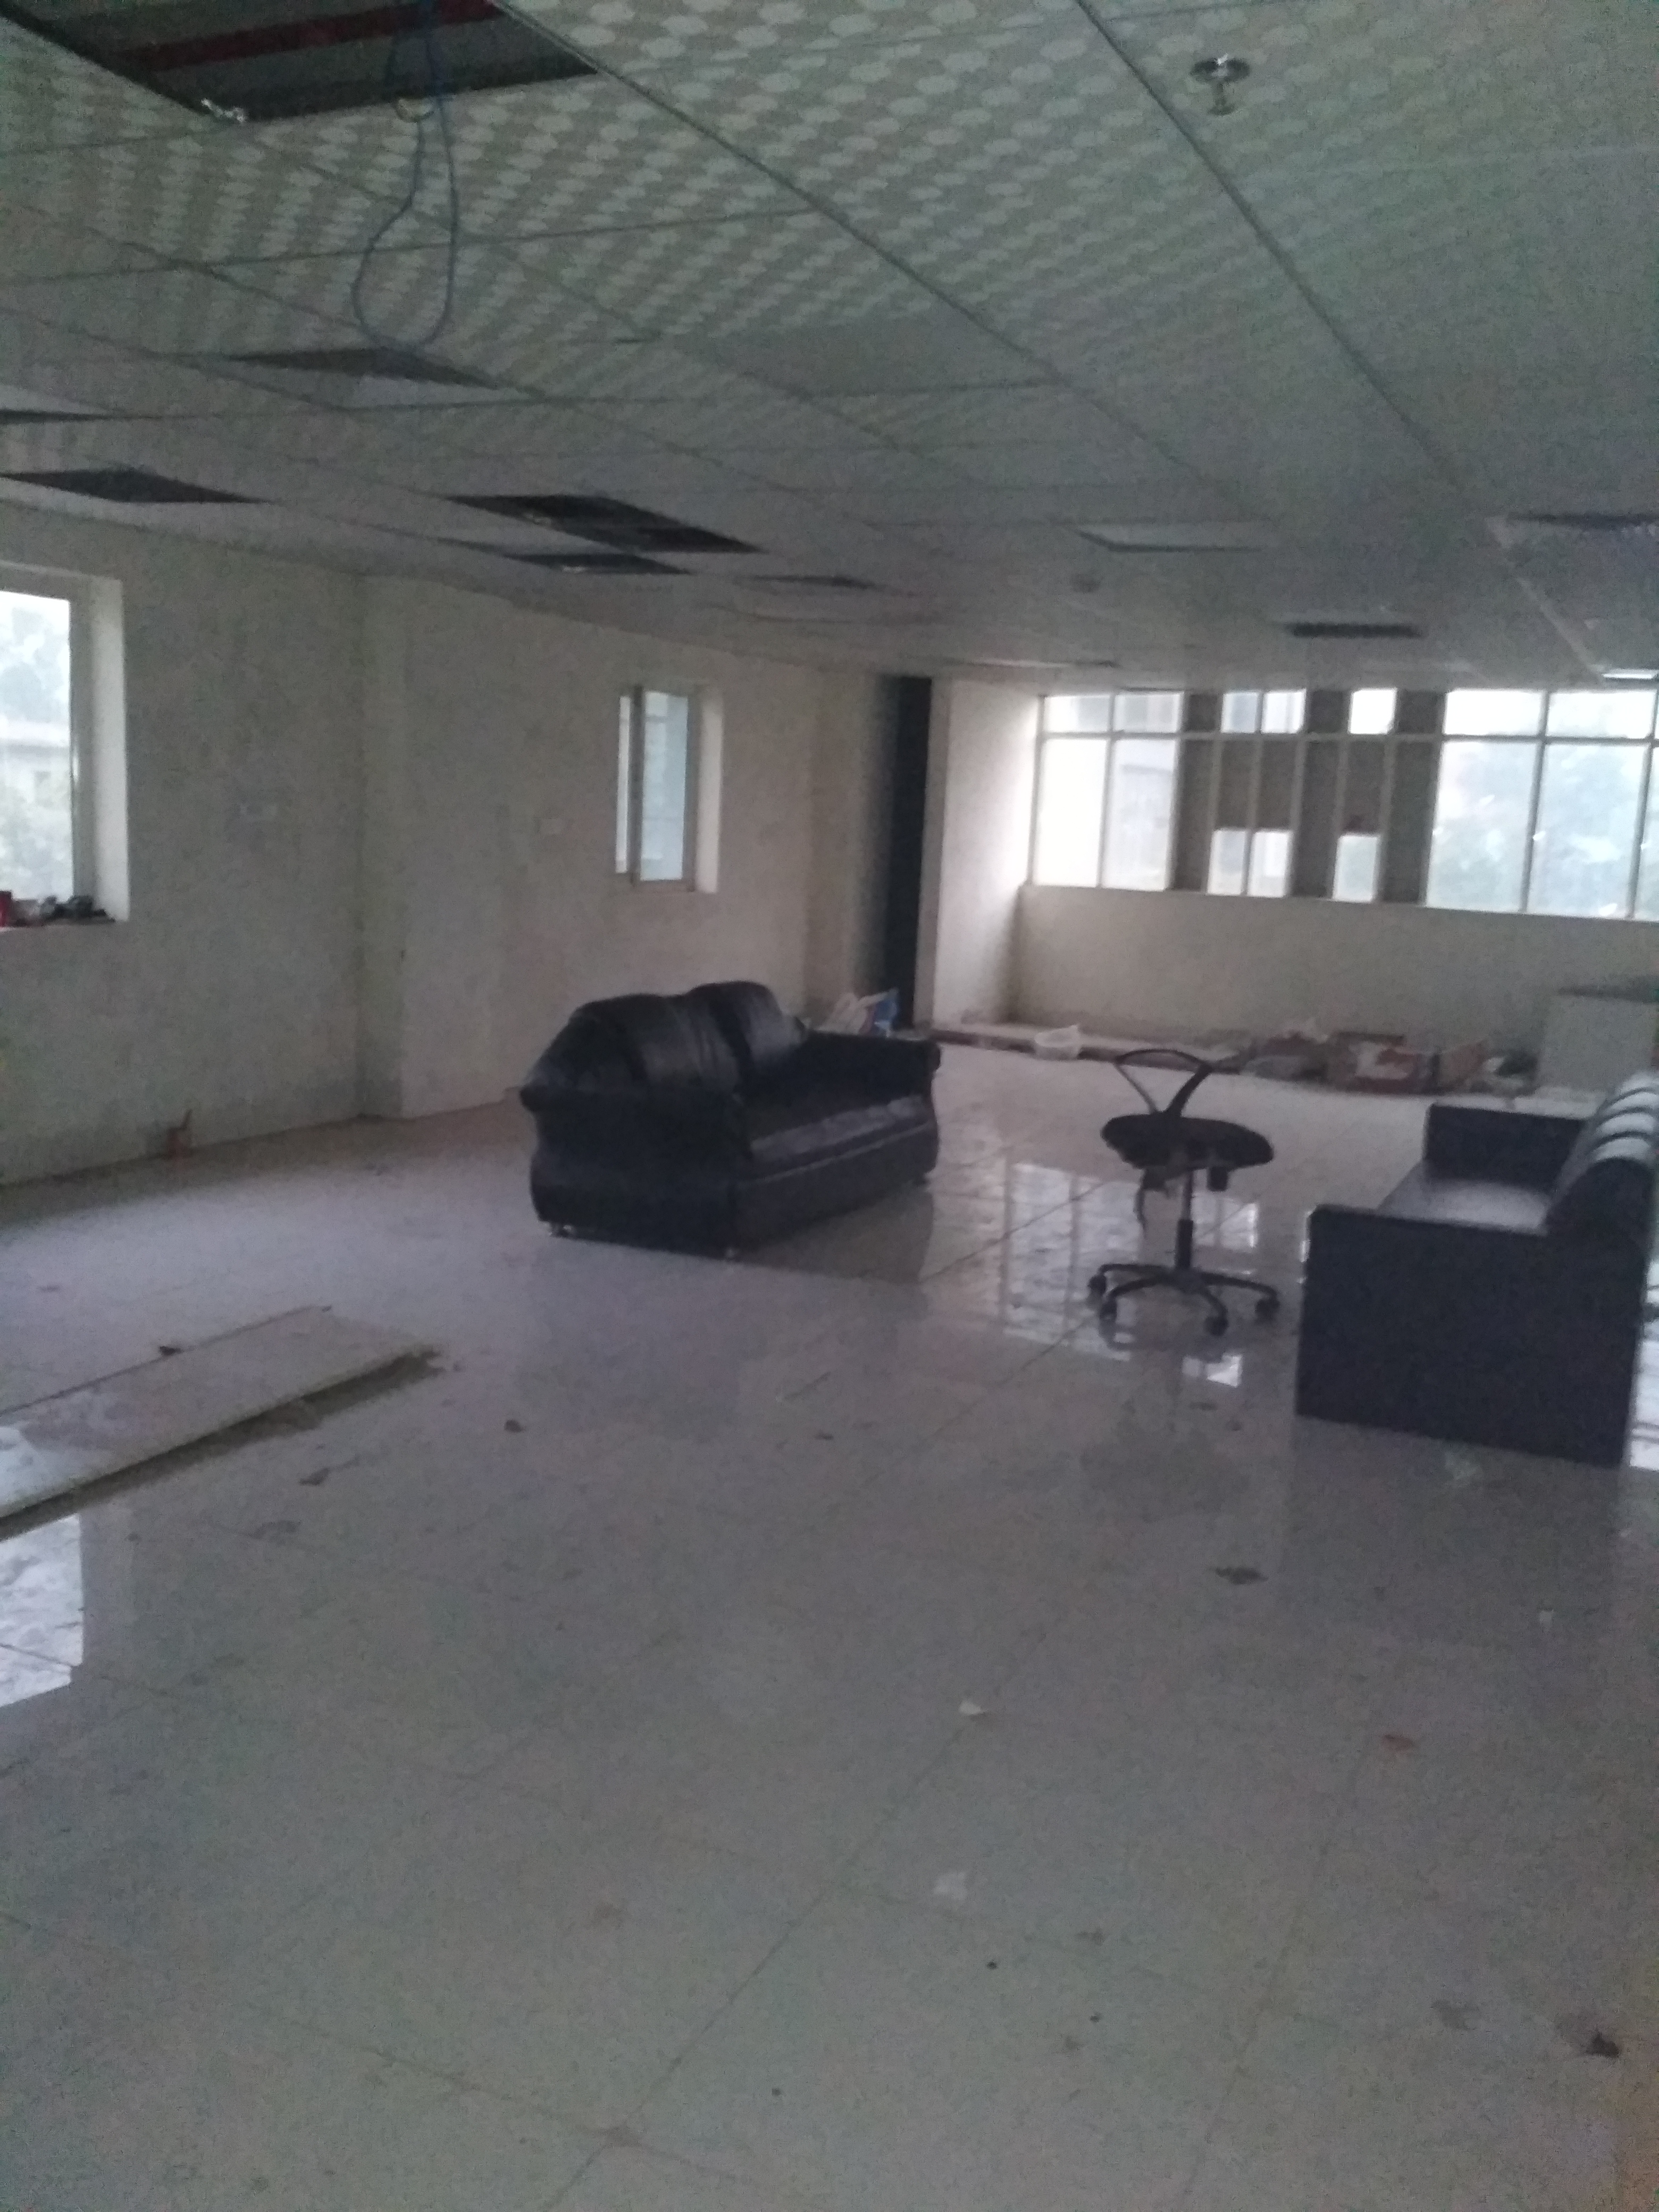 Bare Shell Office space